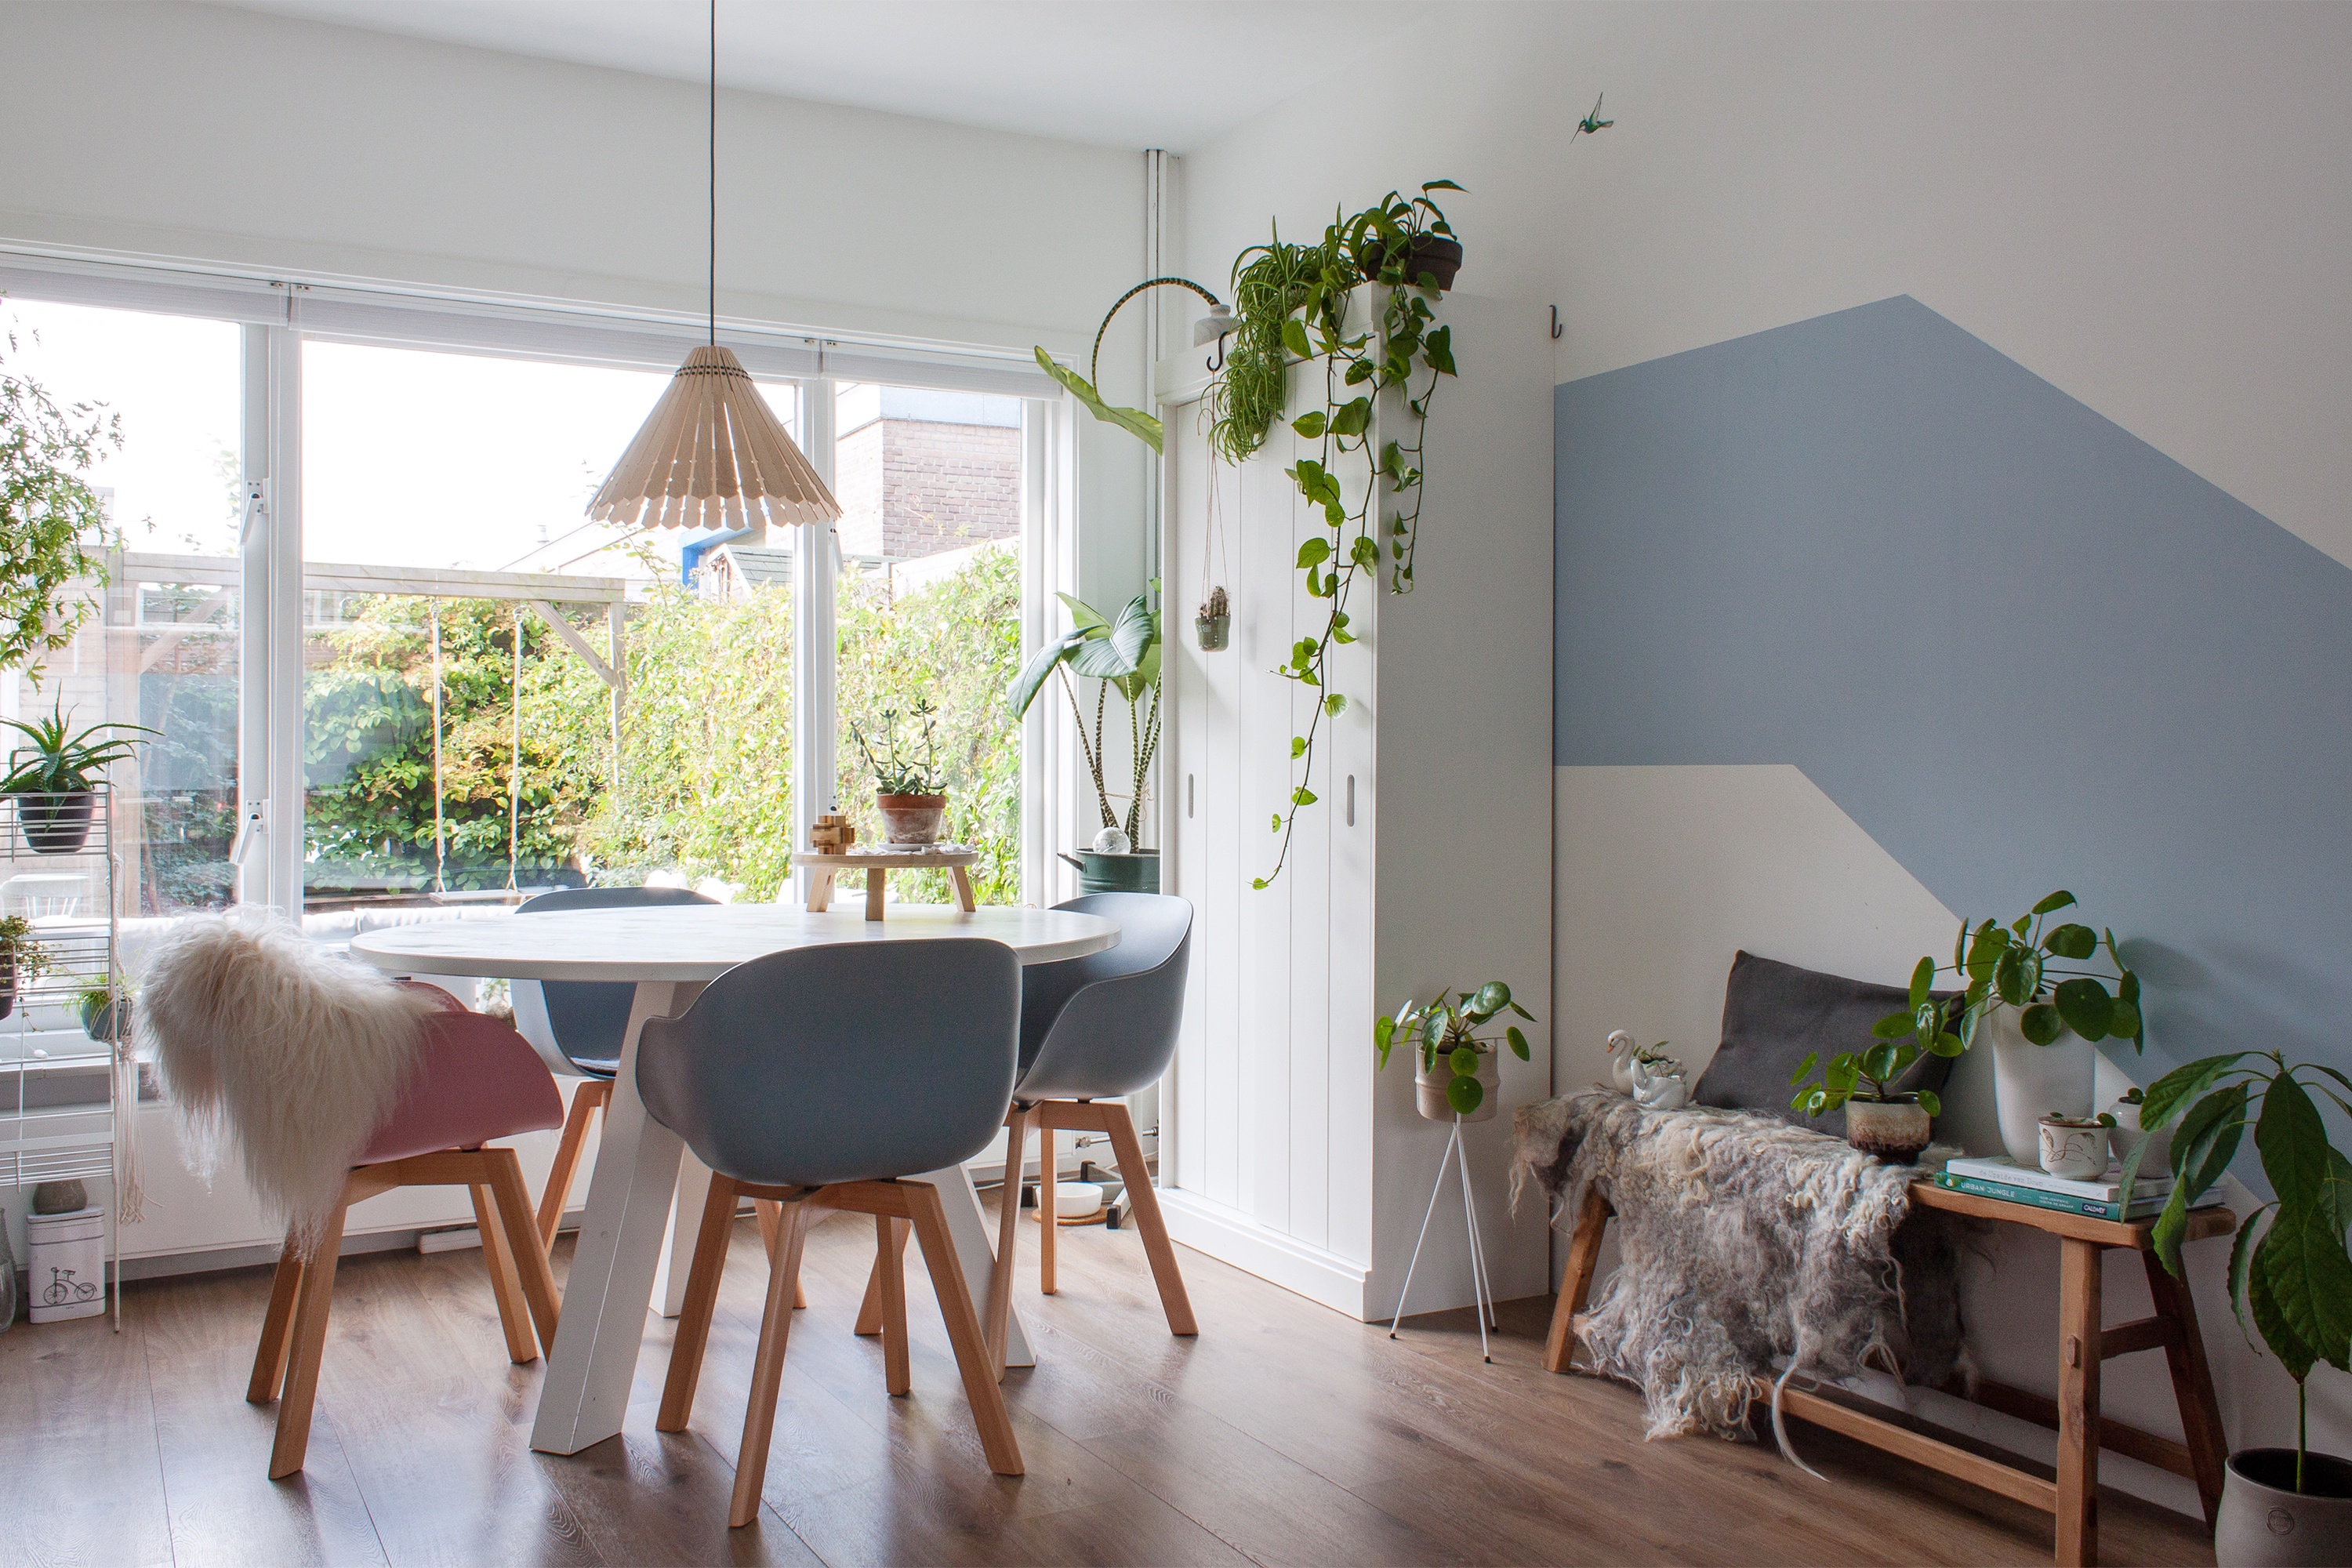 Diy Vtwonen Bank A Dutch Home In Hues Of Blue Apartment Therapy